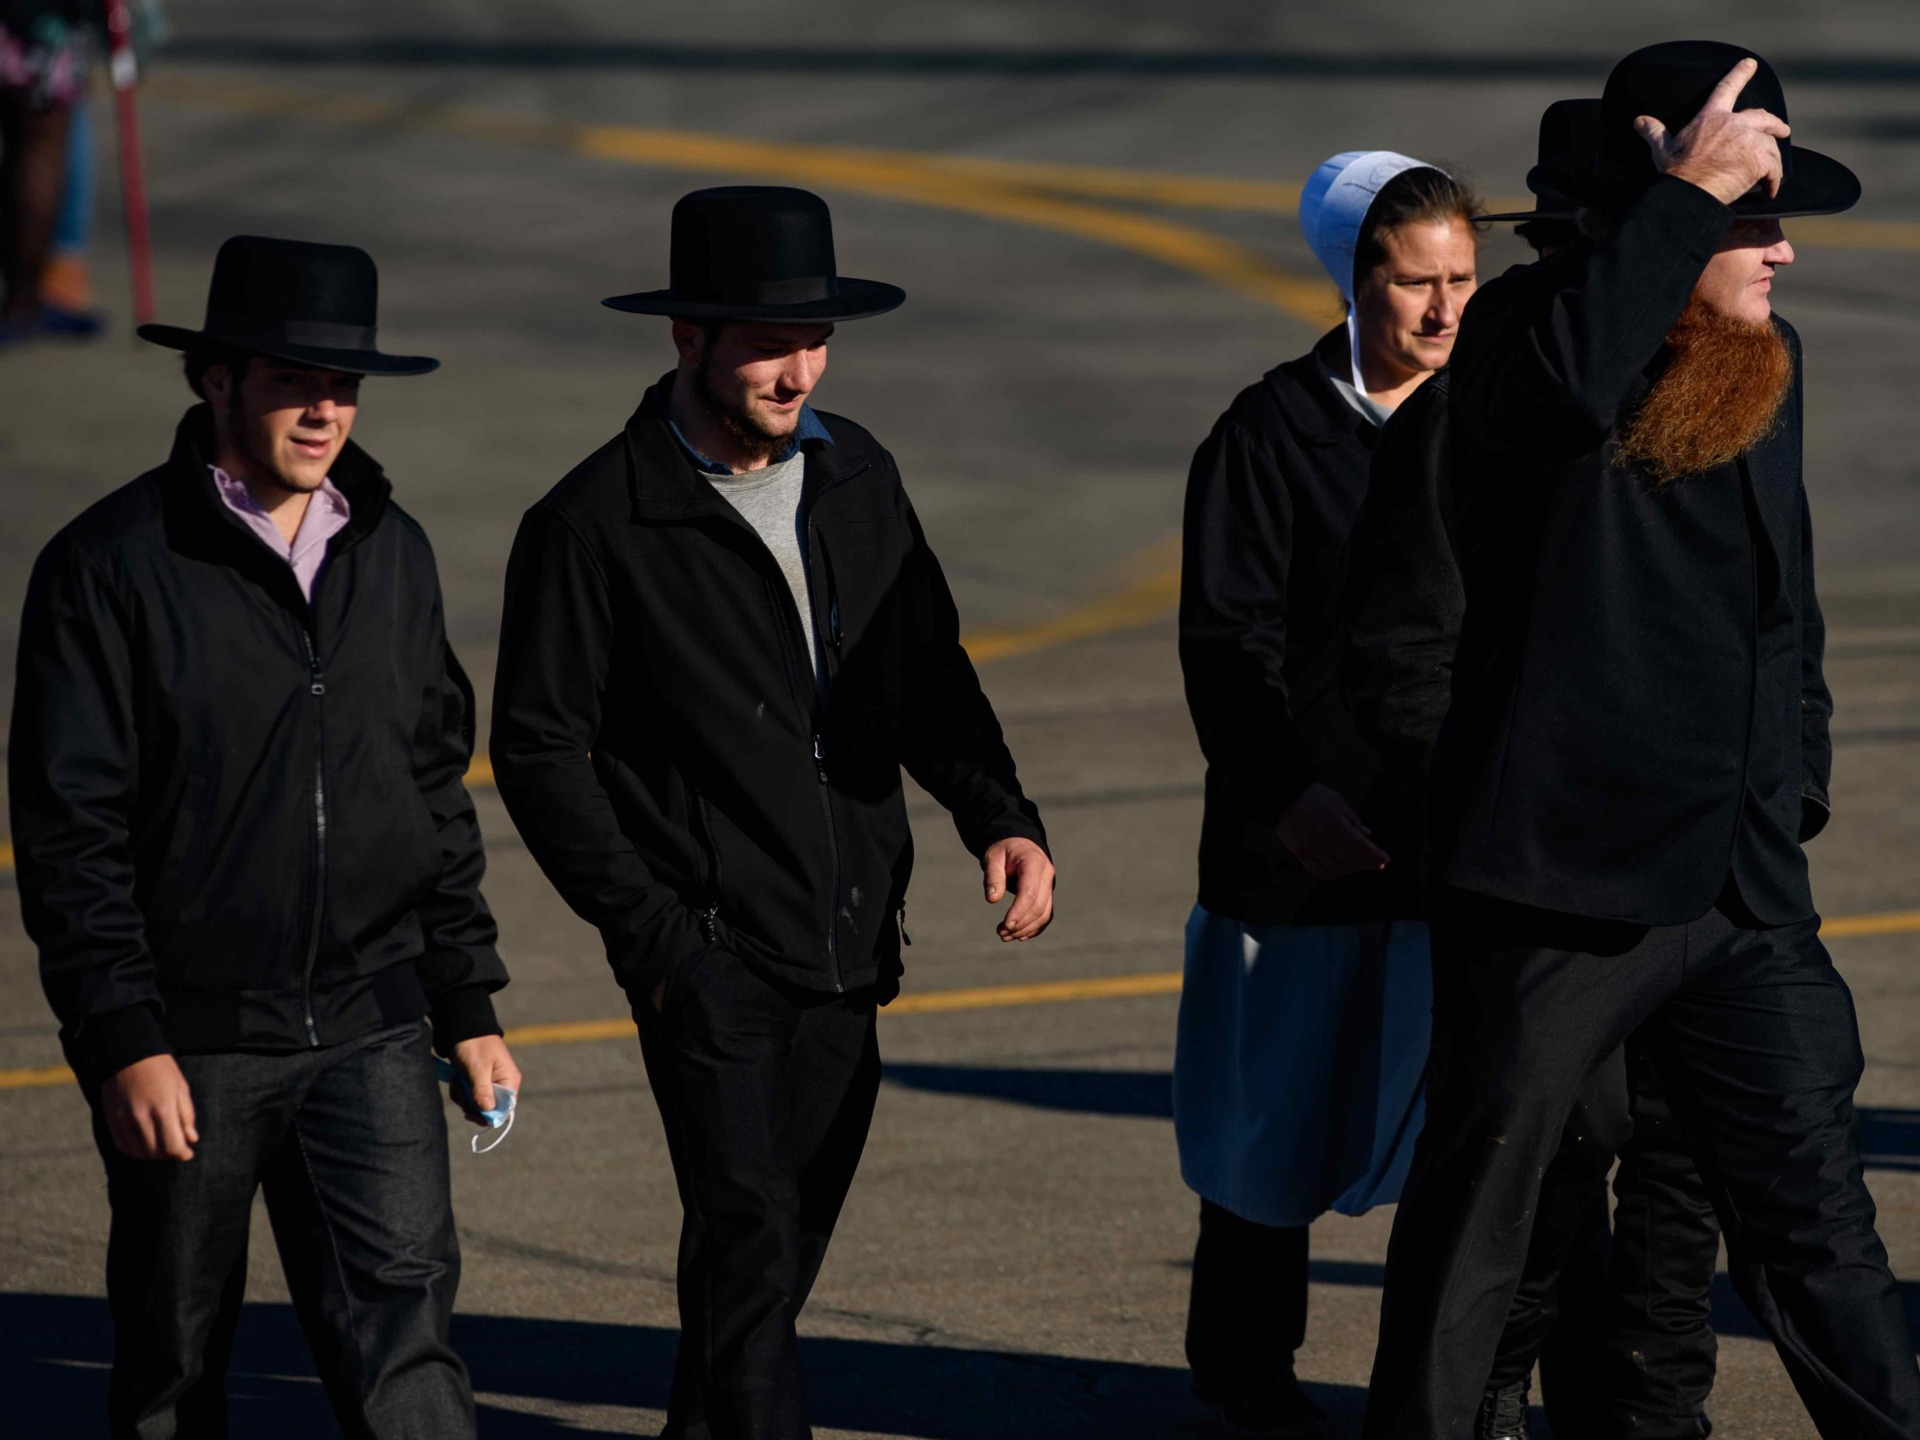 Amish at Butler (Jeff Swensen / Getty)